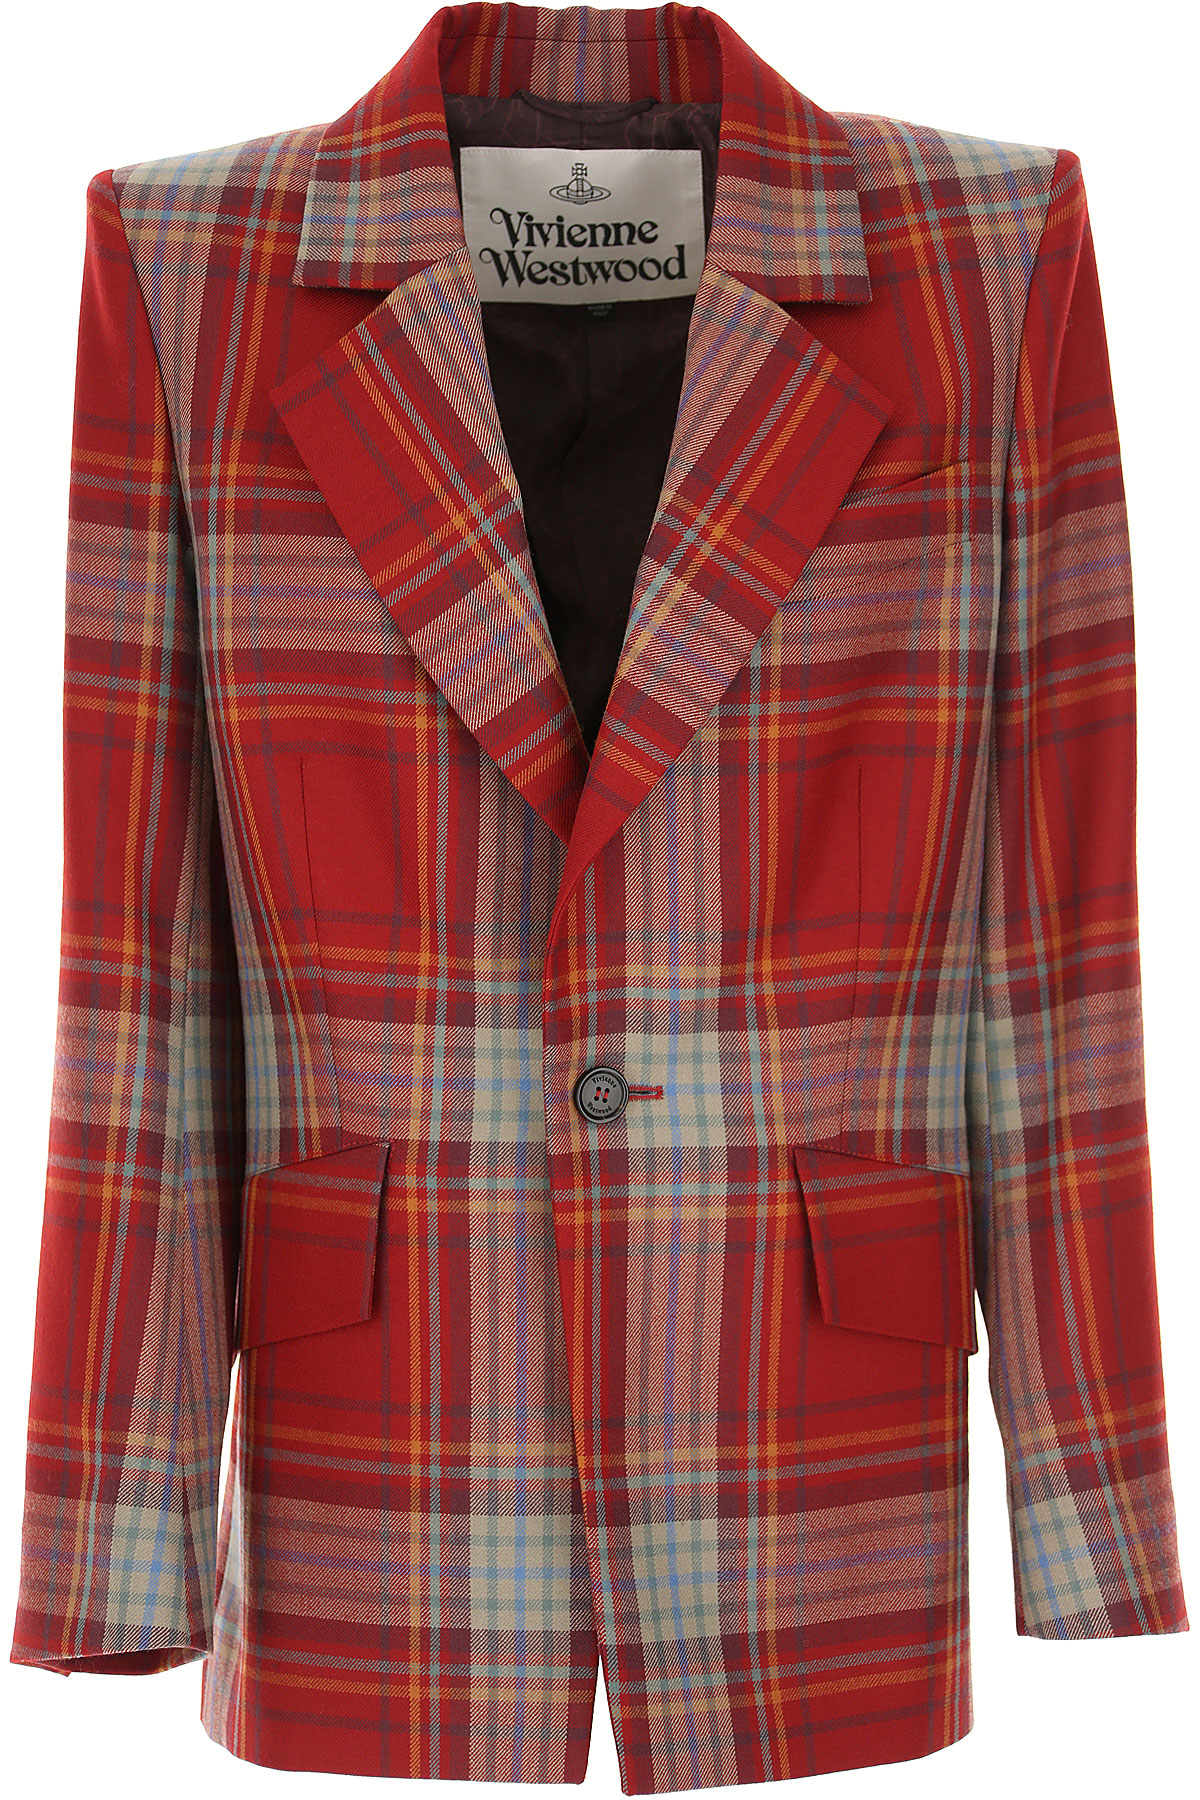 Vivienne Westwood Blazer for Women On Sale, Red, New Wool, 2019, 6 8